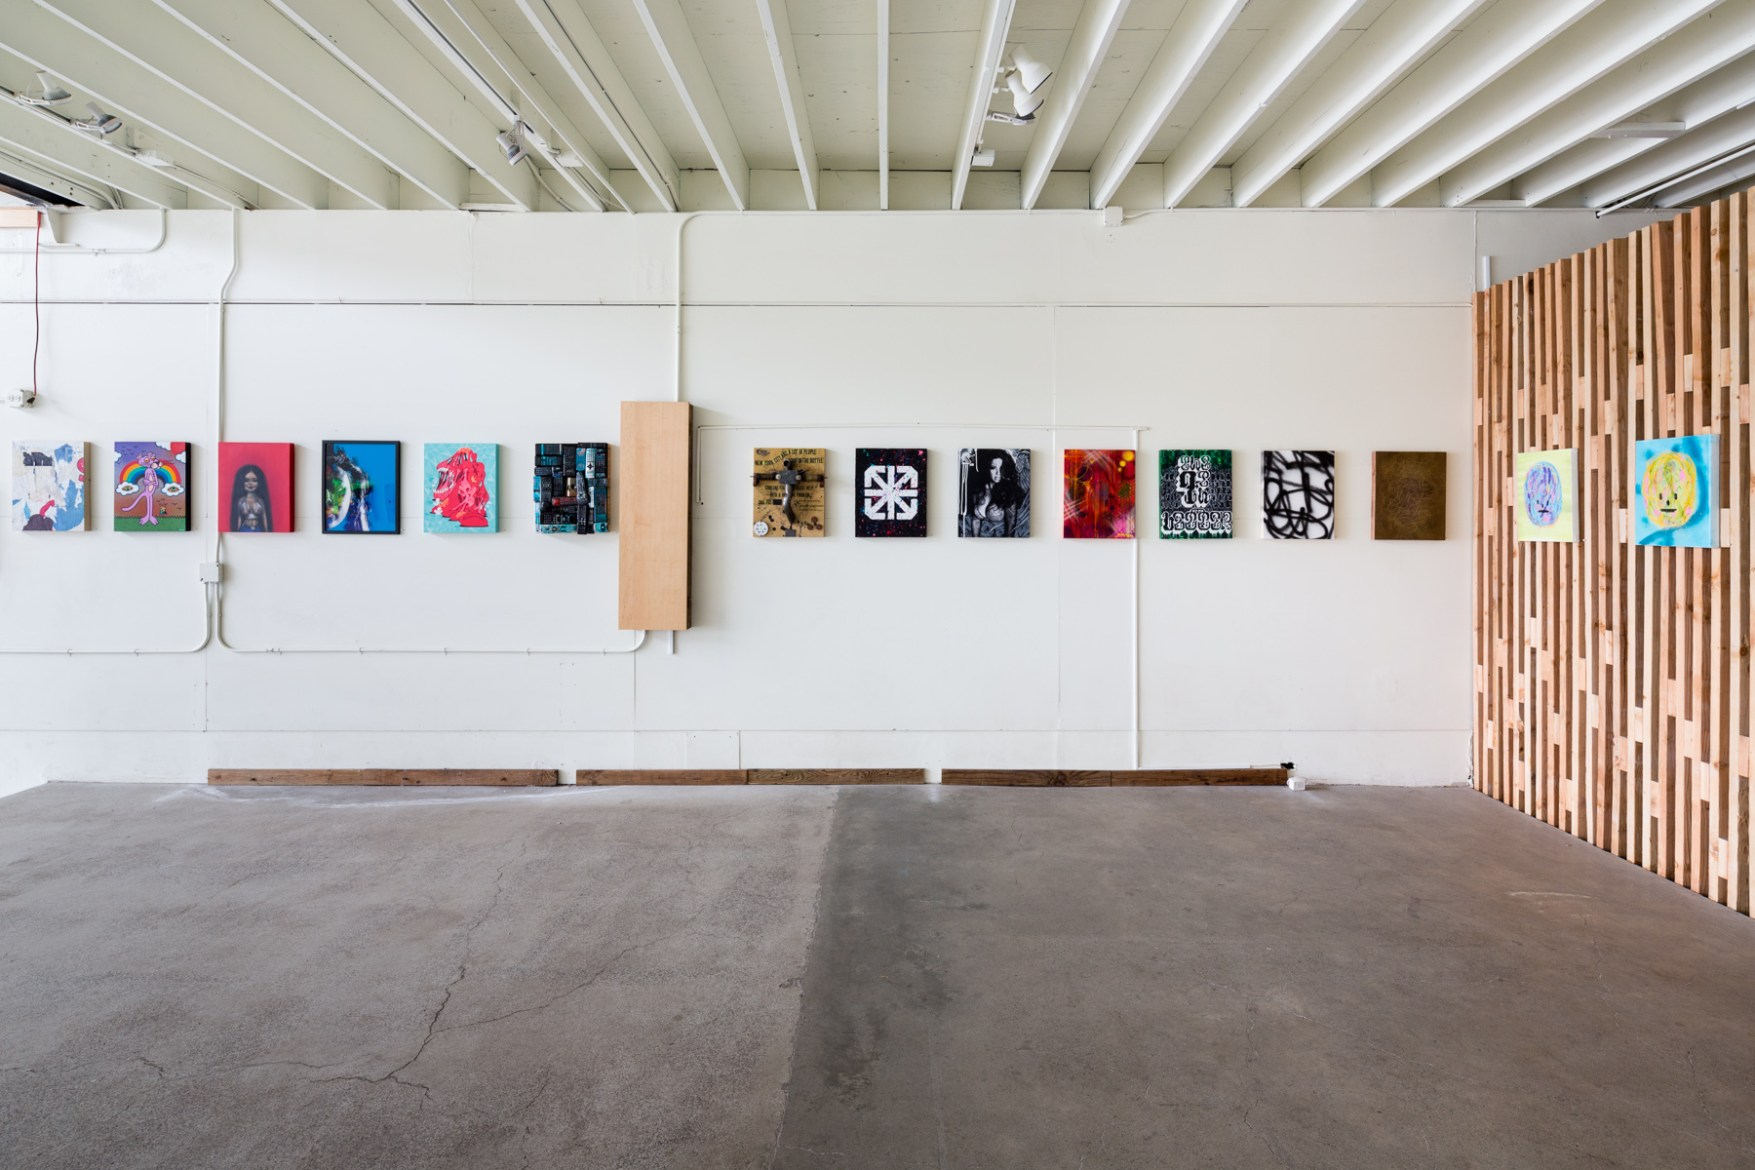 RVCA x The Seventh Letter Pop-Up Exhibition @ POW! WOW! Hawai'i 2014